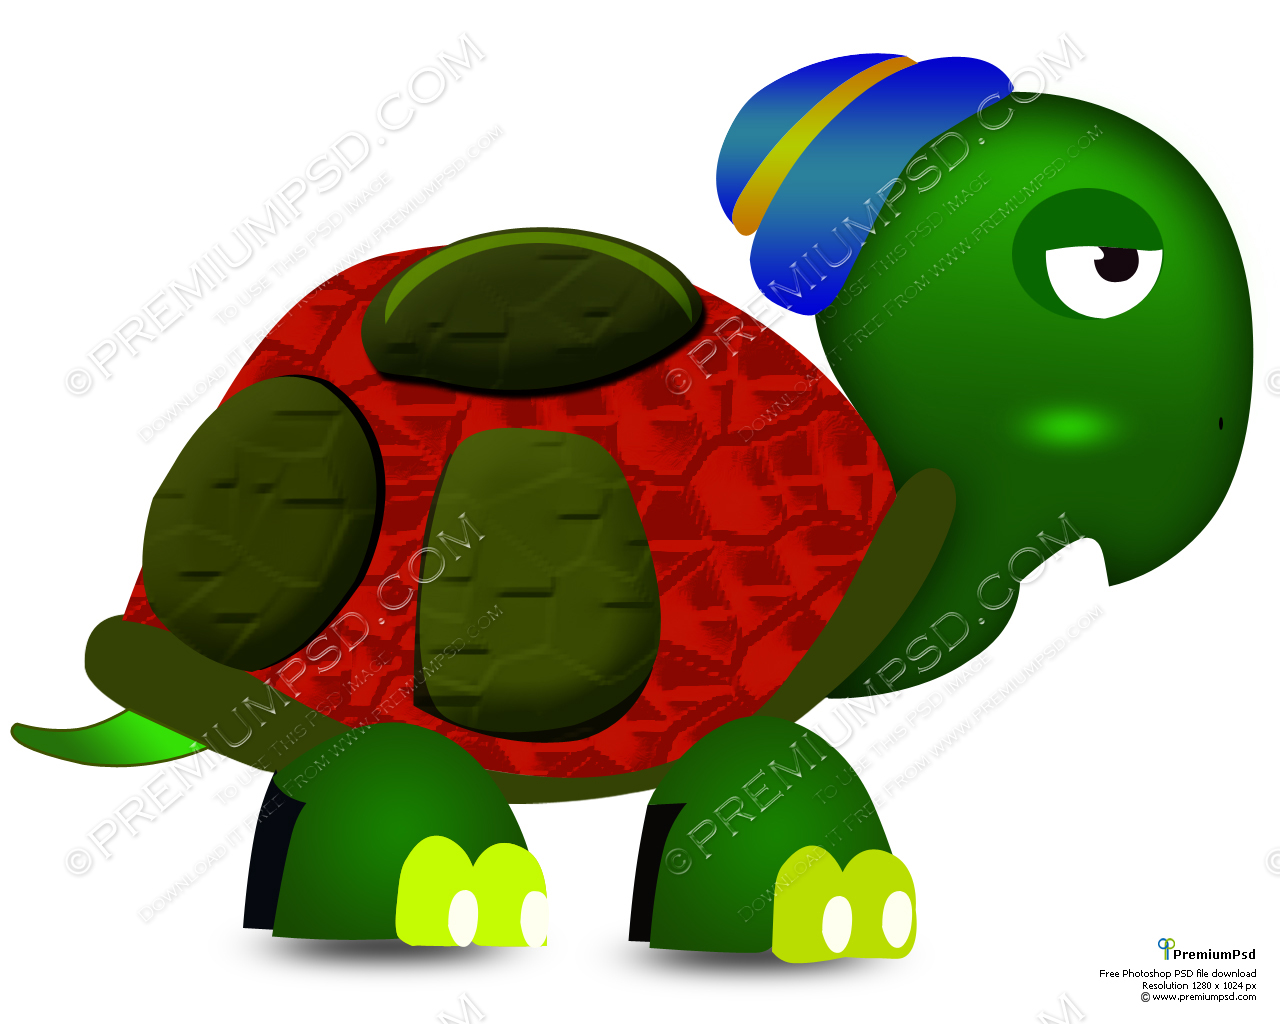 Visiting Cards Backgrounds Cartoon Turtle Gn Icon Psd 519521 Wallpaper wallpaper